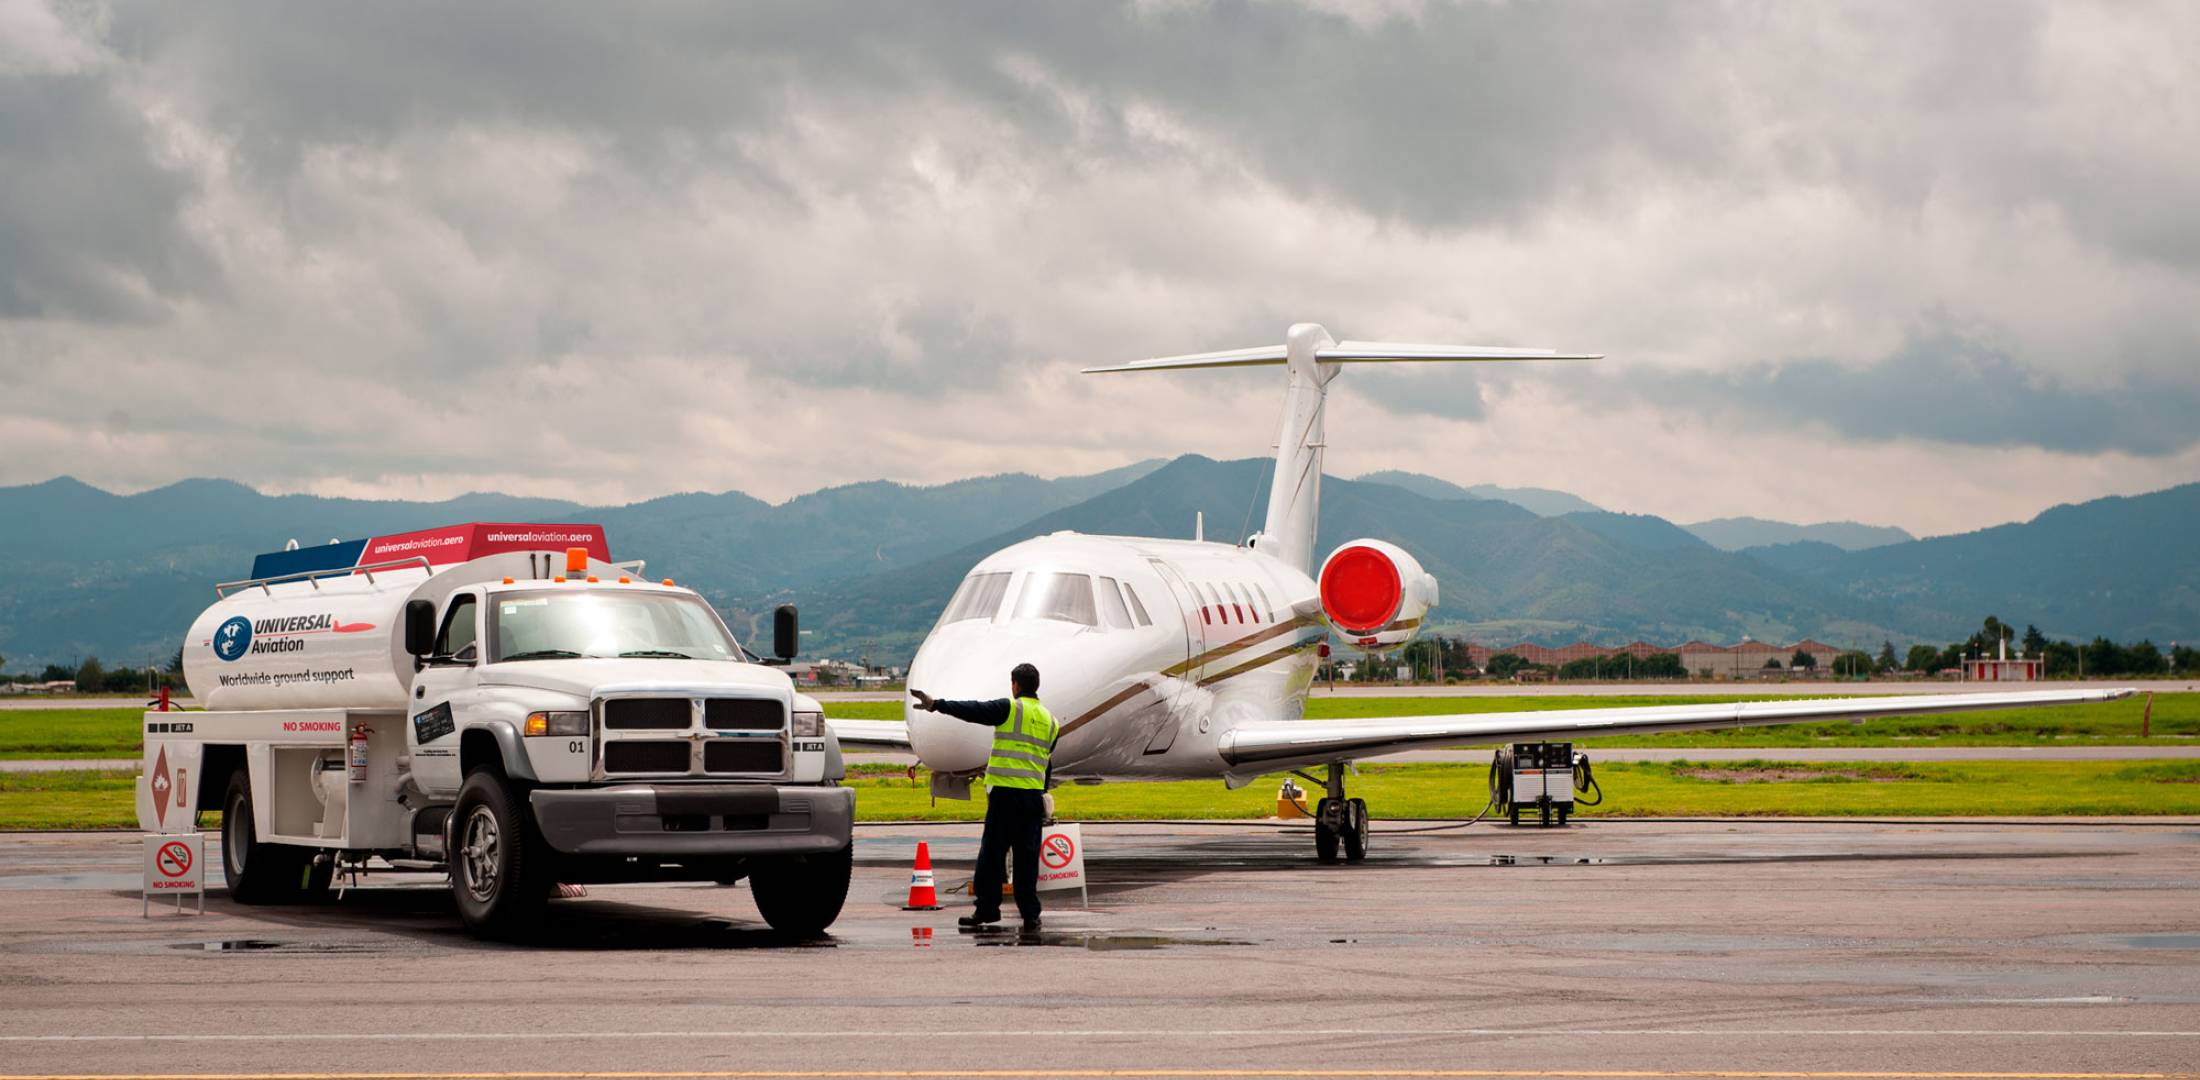 UVair purchased by World Fuel Services